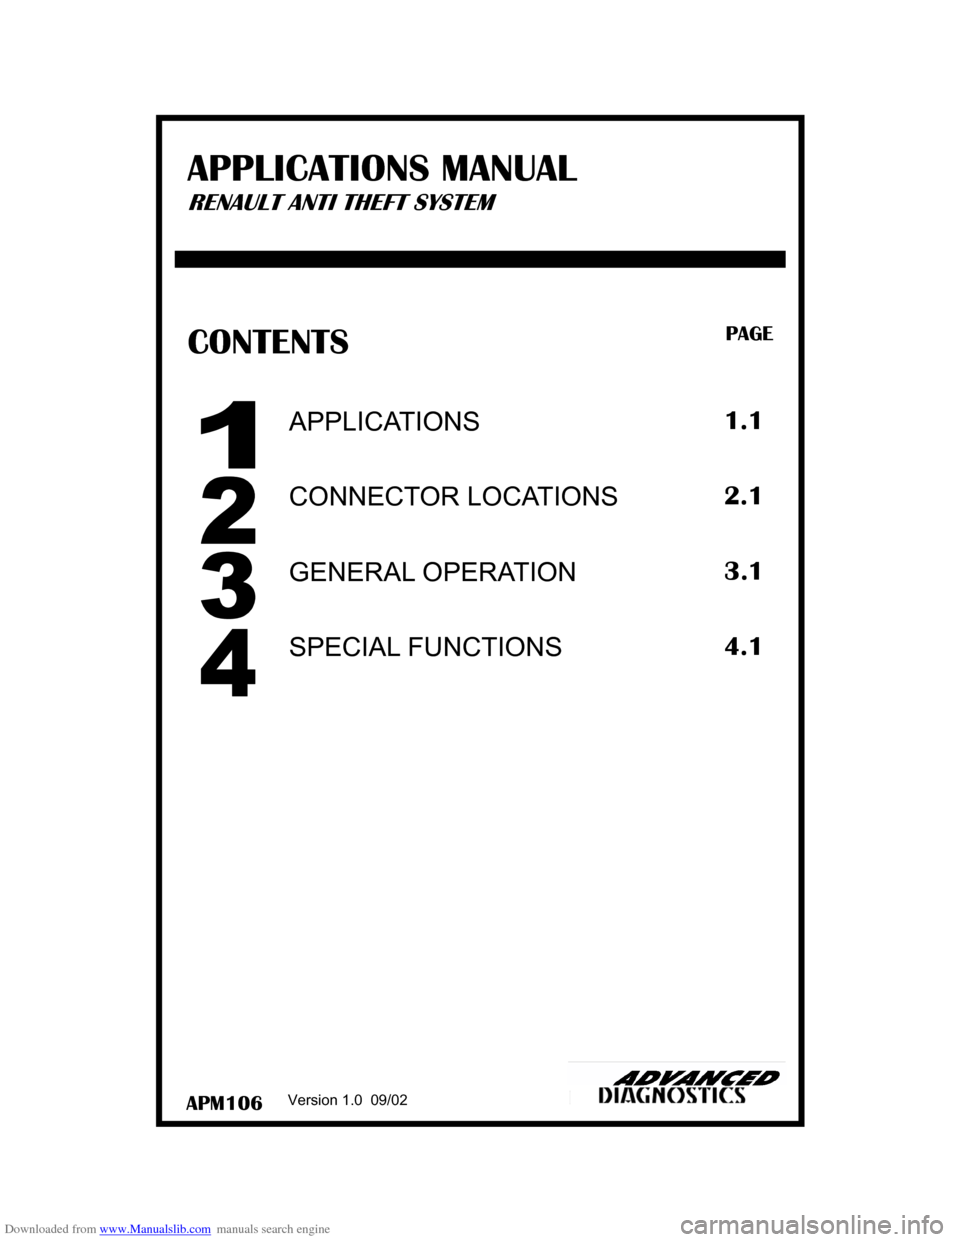 RENAULT CLIO 1997 X57 / 1.G Anti Theft System Manual Downloaded from www.Manualslib.com manuals search engine APM106  CONTENTS PAGE  Version 1.0  09/02  SPECIAL FUNCTIONS  APPLICATIONS  CONNECTOR LOCATIONS  GENERAL OPERATION  1.1  2.1  3.1  4.1  APPLICA